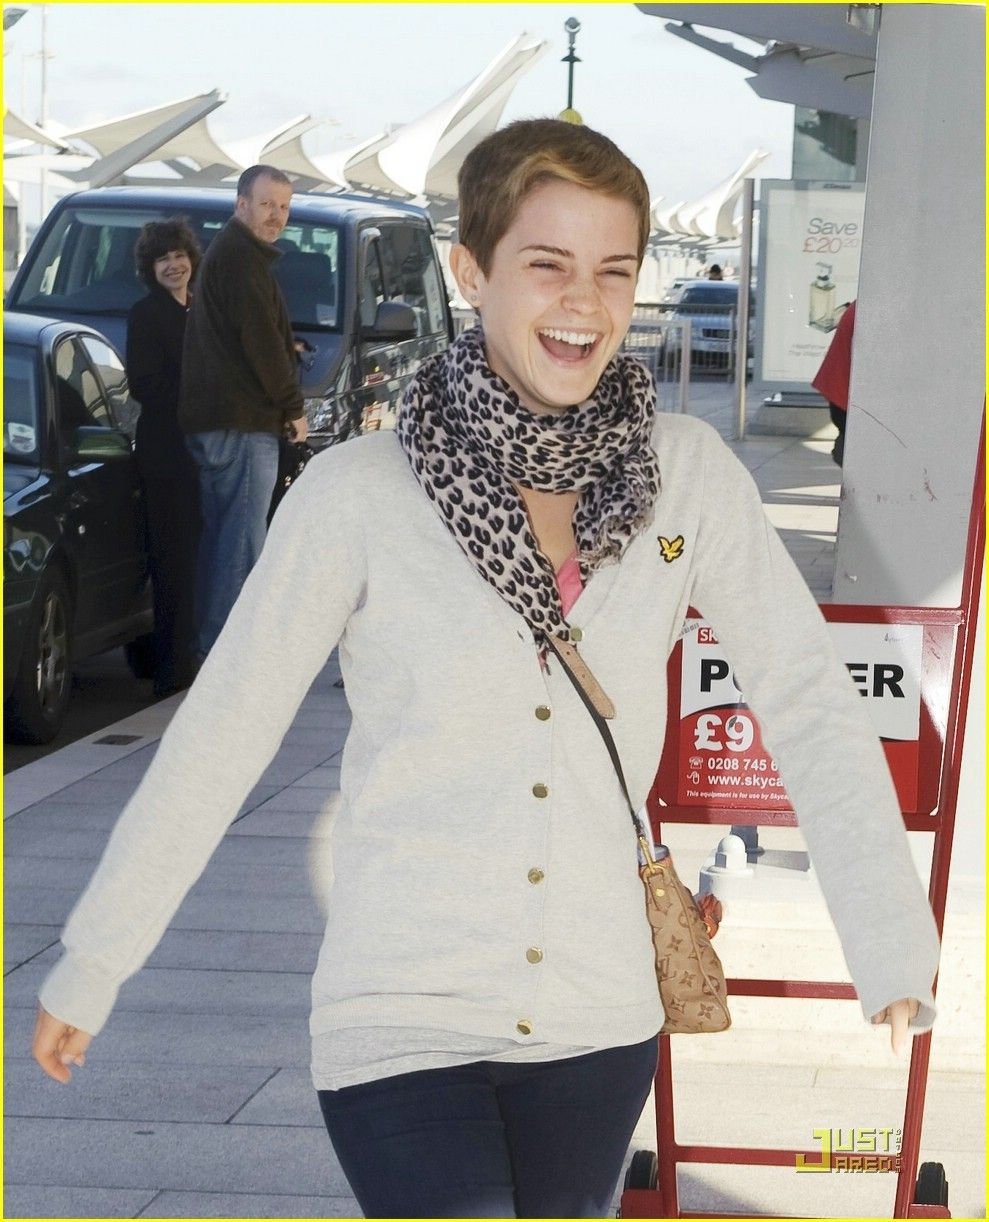 Emma Watson is all smiles and laughs as she prepares to catch a flight at Heathrow Airport in London on Sunday morning (September 12). The 20-year-old University… Crediti : Just Jared Instagram : https://www.instagram.com/we.love.emma.watson.crush/ Passate dal nostro gruppo ; https://www.facebook.com/groups/445446642475974/ Twitter : https://twitter.com/GiacomaGs/status/907646326359445509 ? ~EmWatson